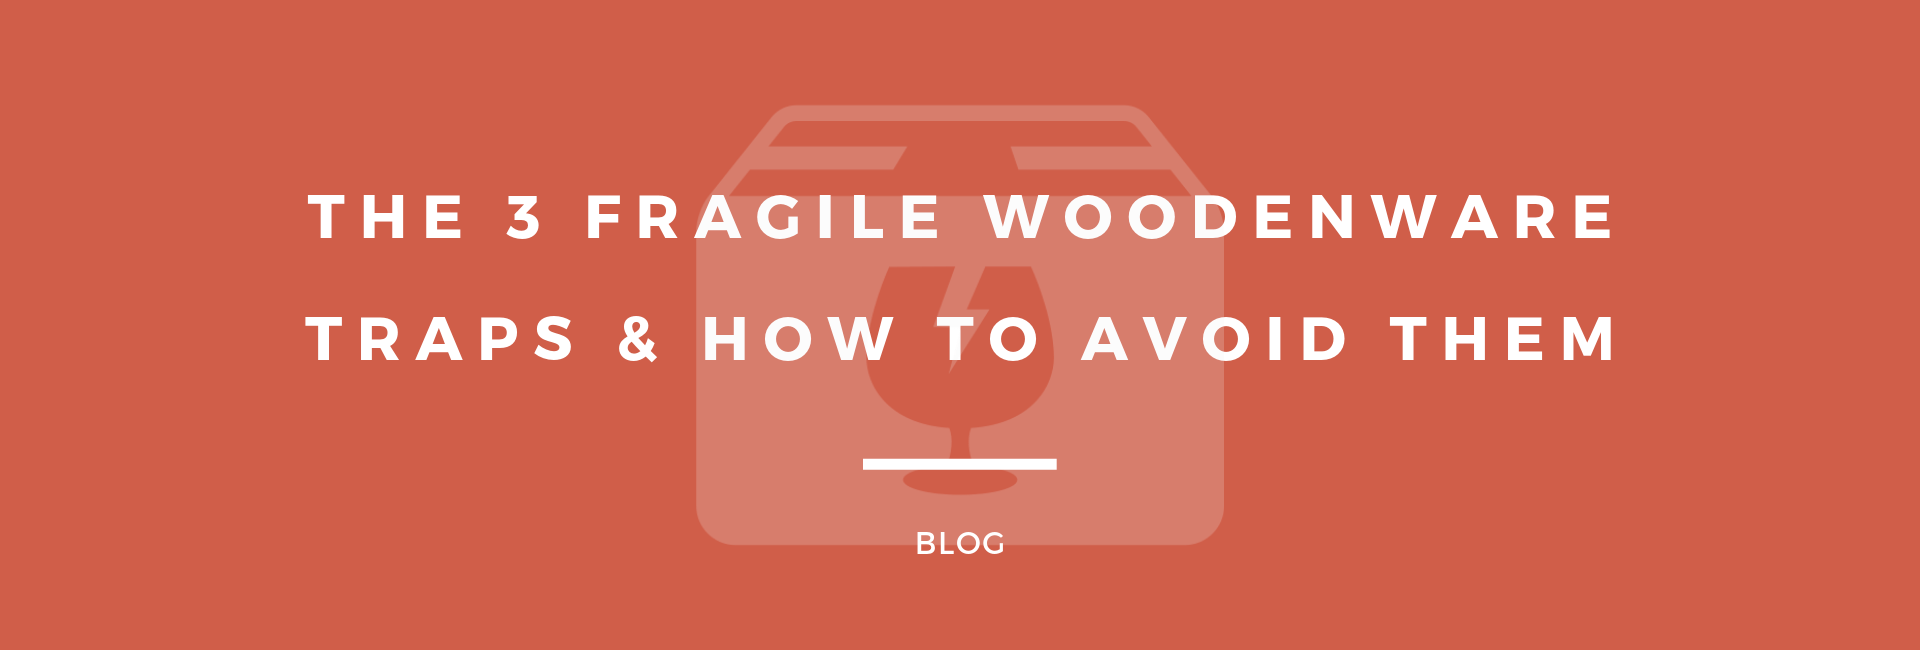 The 3 Fragile Woodenware Traps & How To Avoid Them - Cover Photo